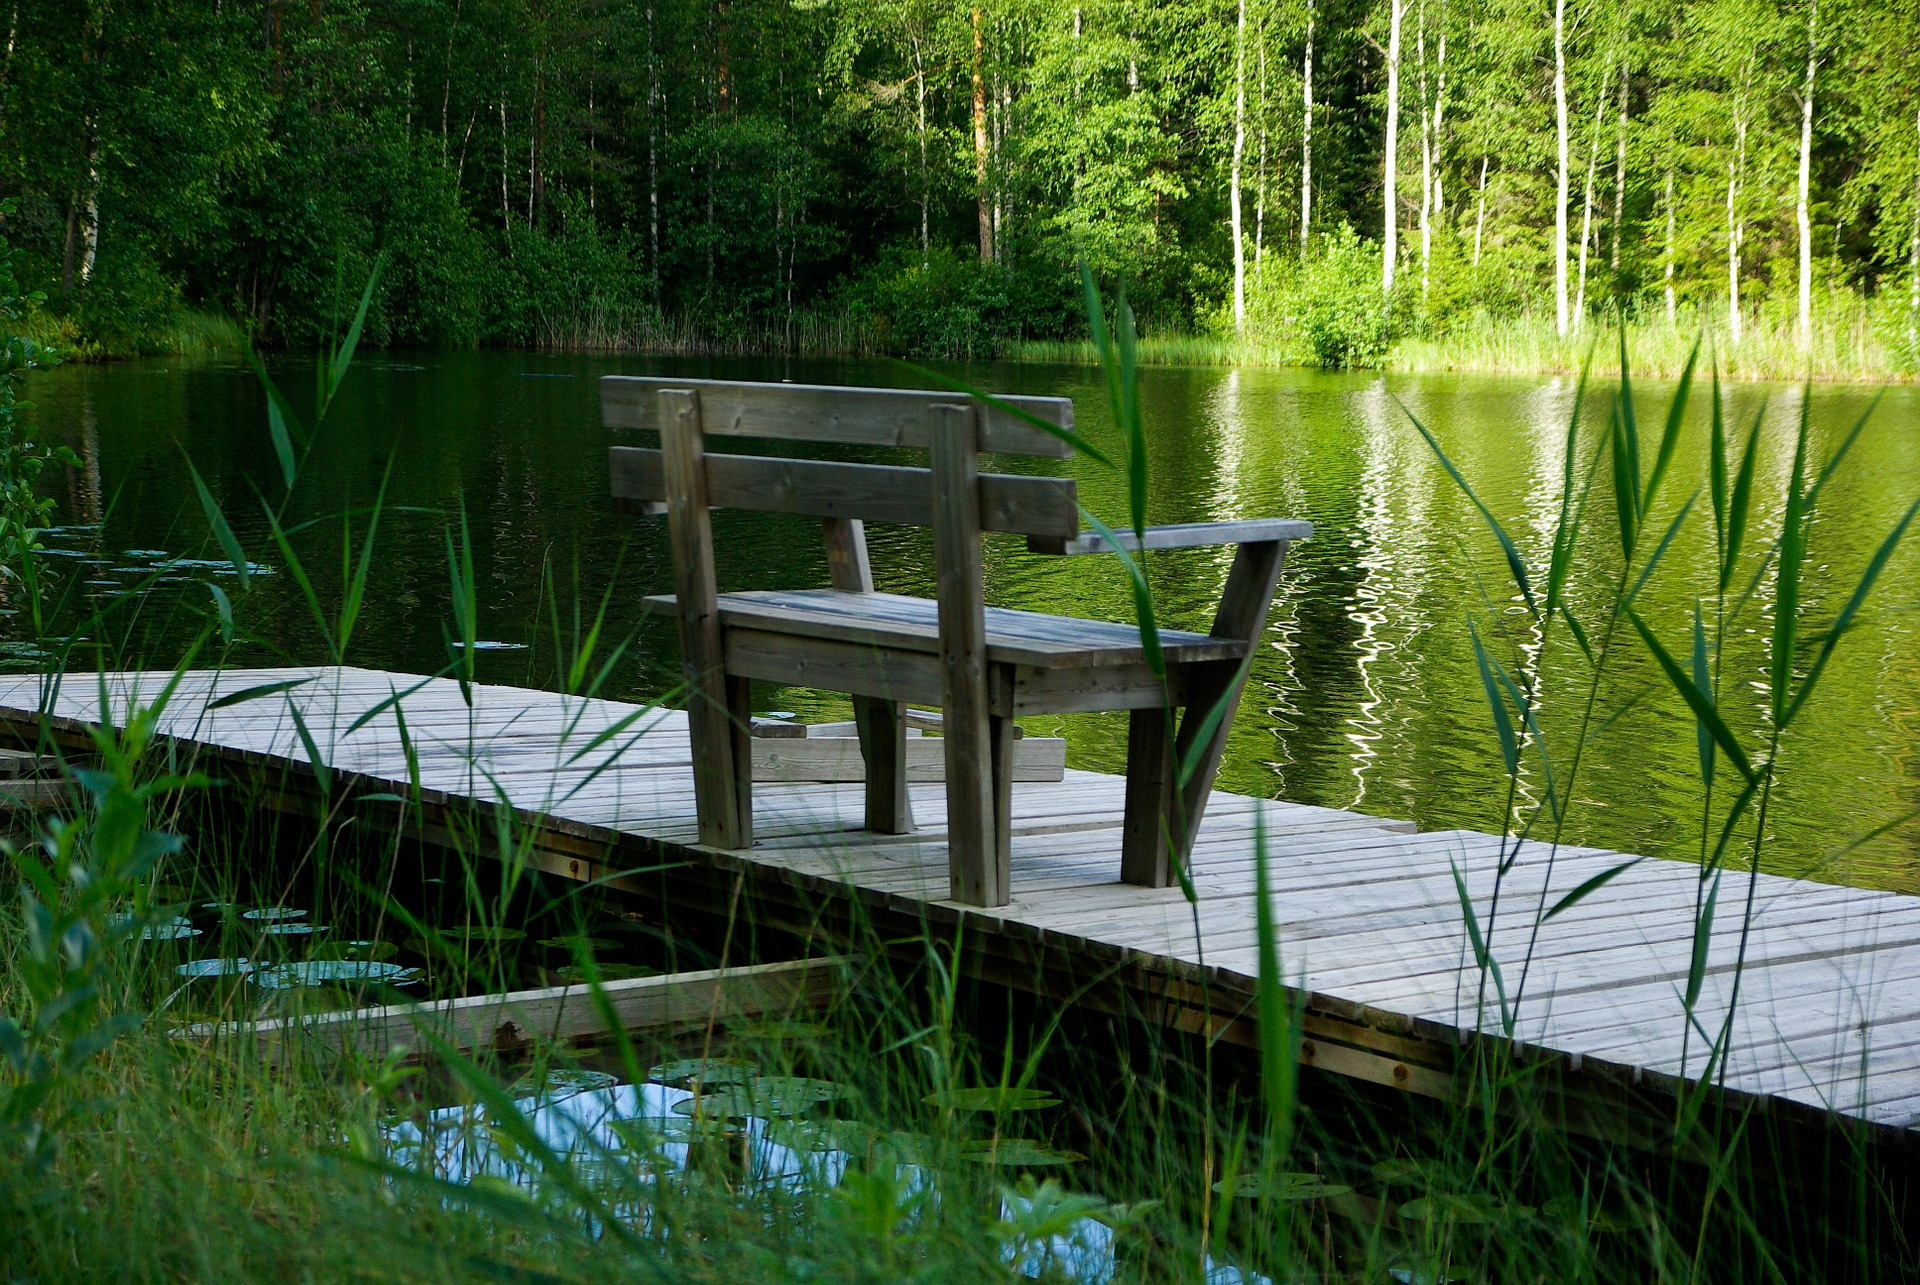 """"""" Finland, Lake, Bench """" by  Jacqueline Macou  is  public domain ."""